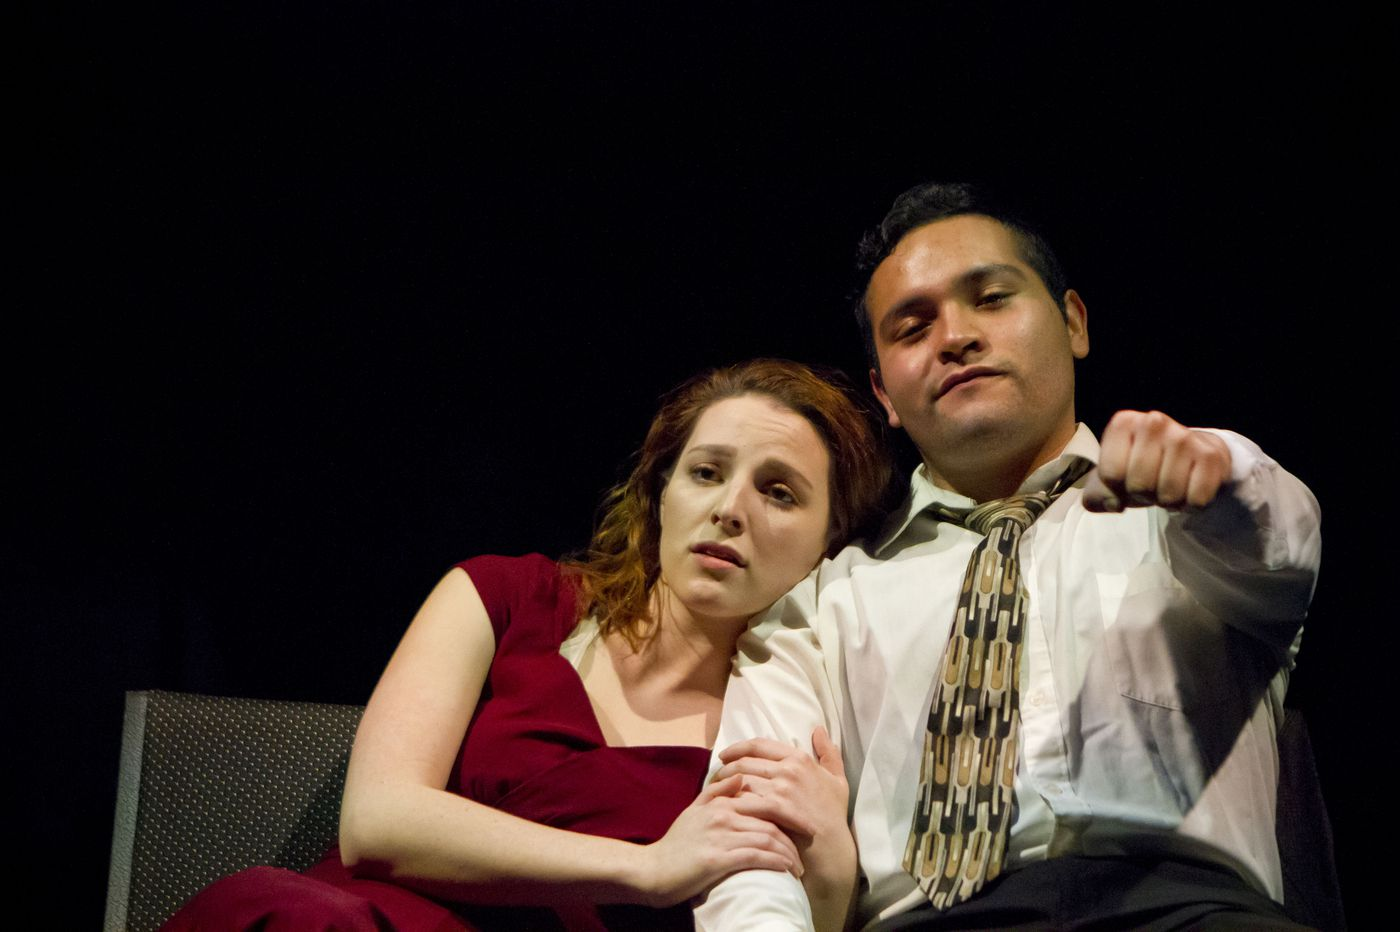 'Bonnie and Clyde' at 11th Hour Theatre Company: Good voices, little glamour